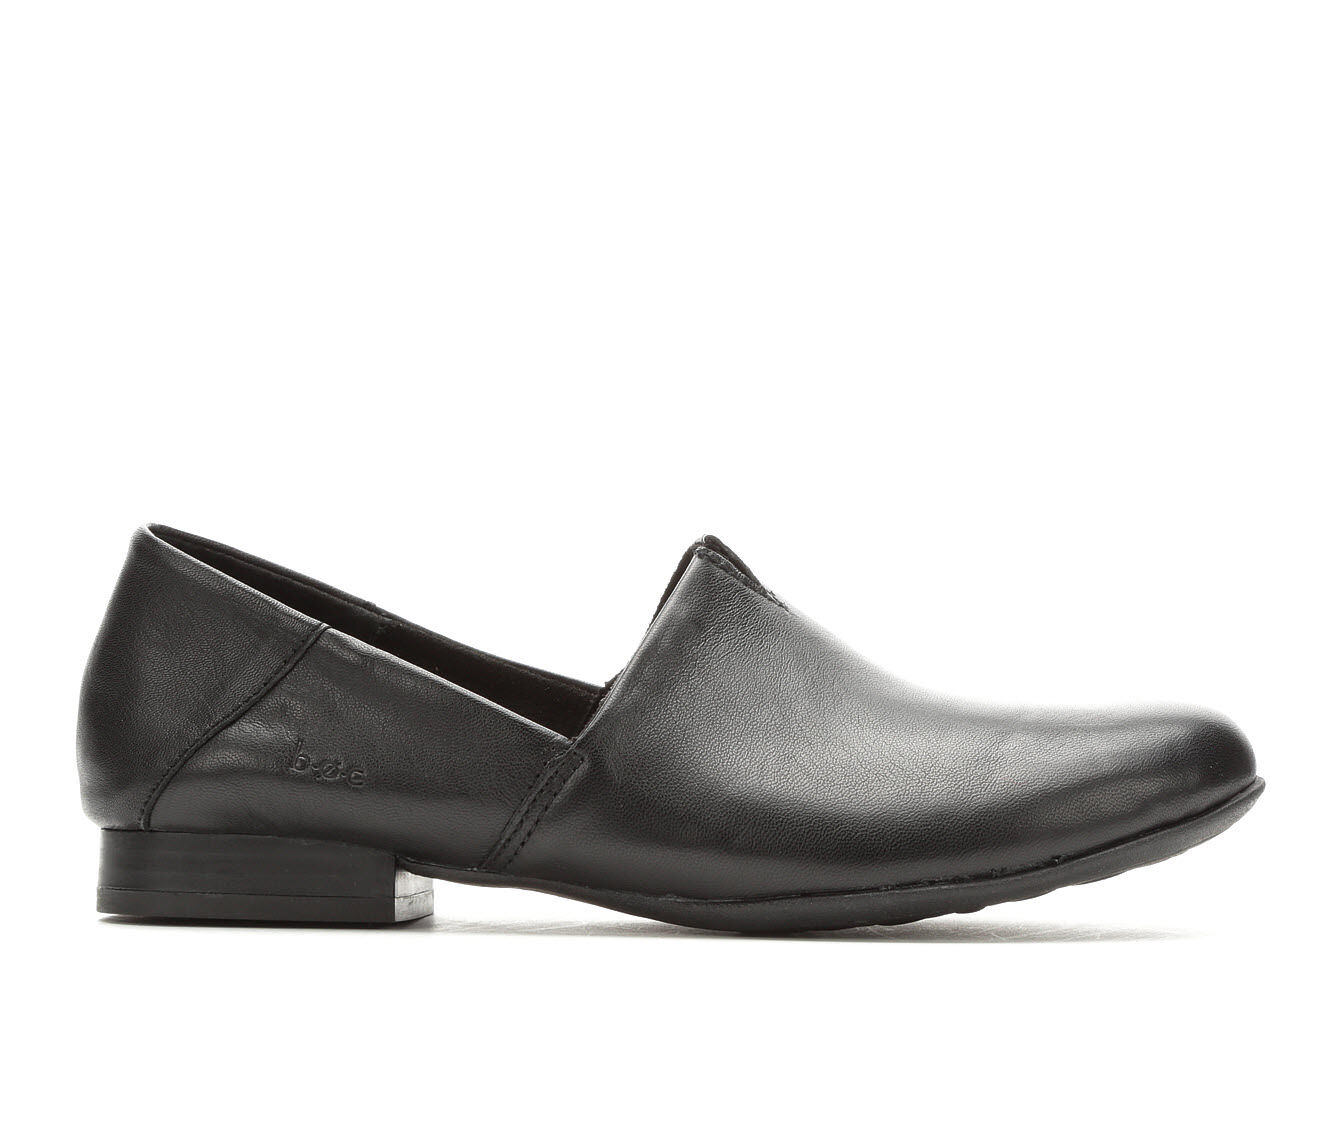 cheapest latest style Women's B.O.C. Suree Slip-Ons Black